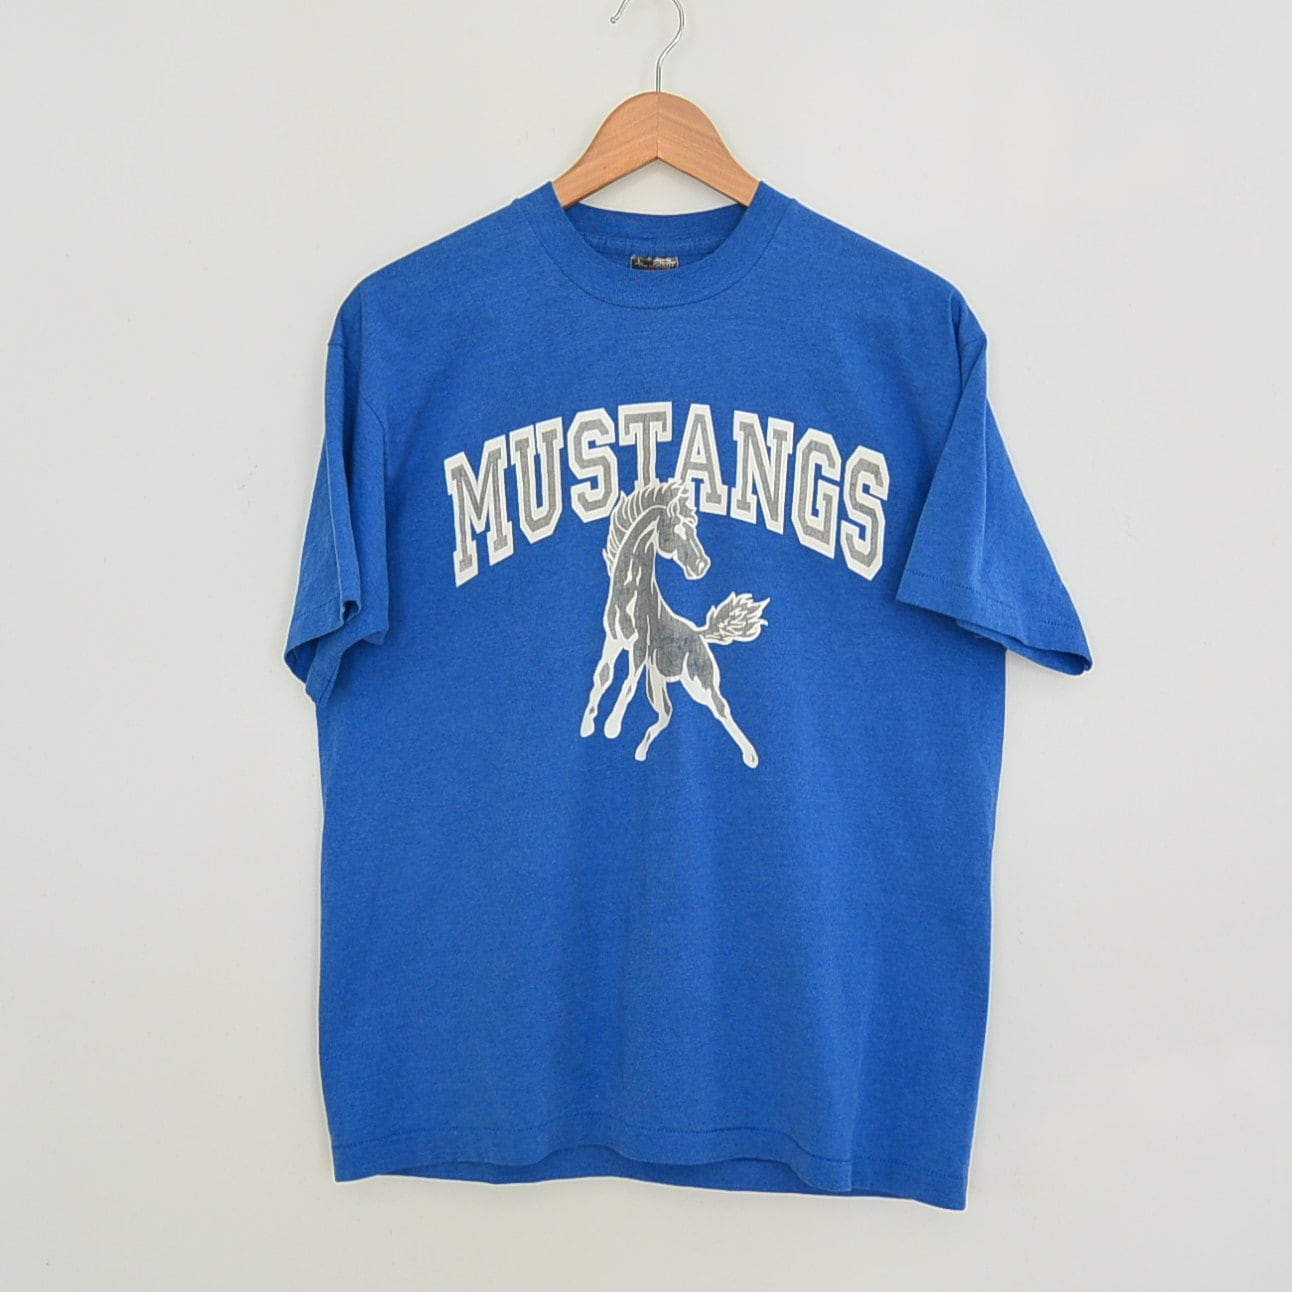 Vintage mustangs sports tee shirt 50 50 cotton poly blend for Vintage mustang t shirt